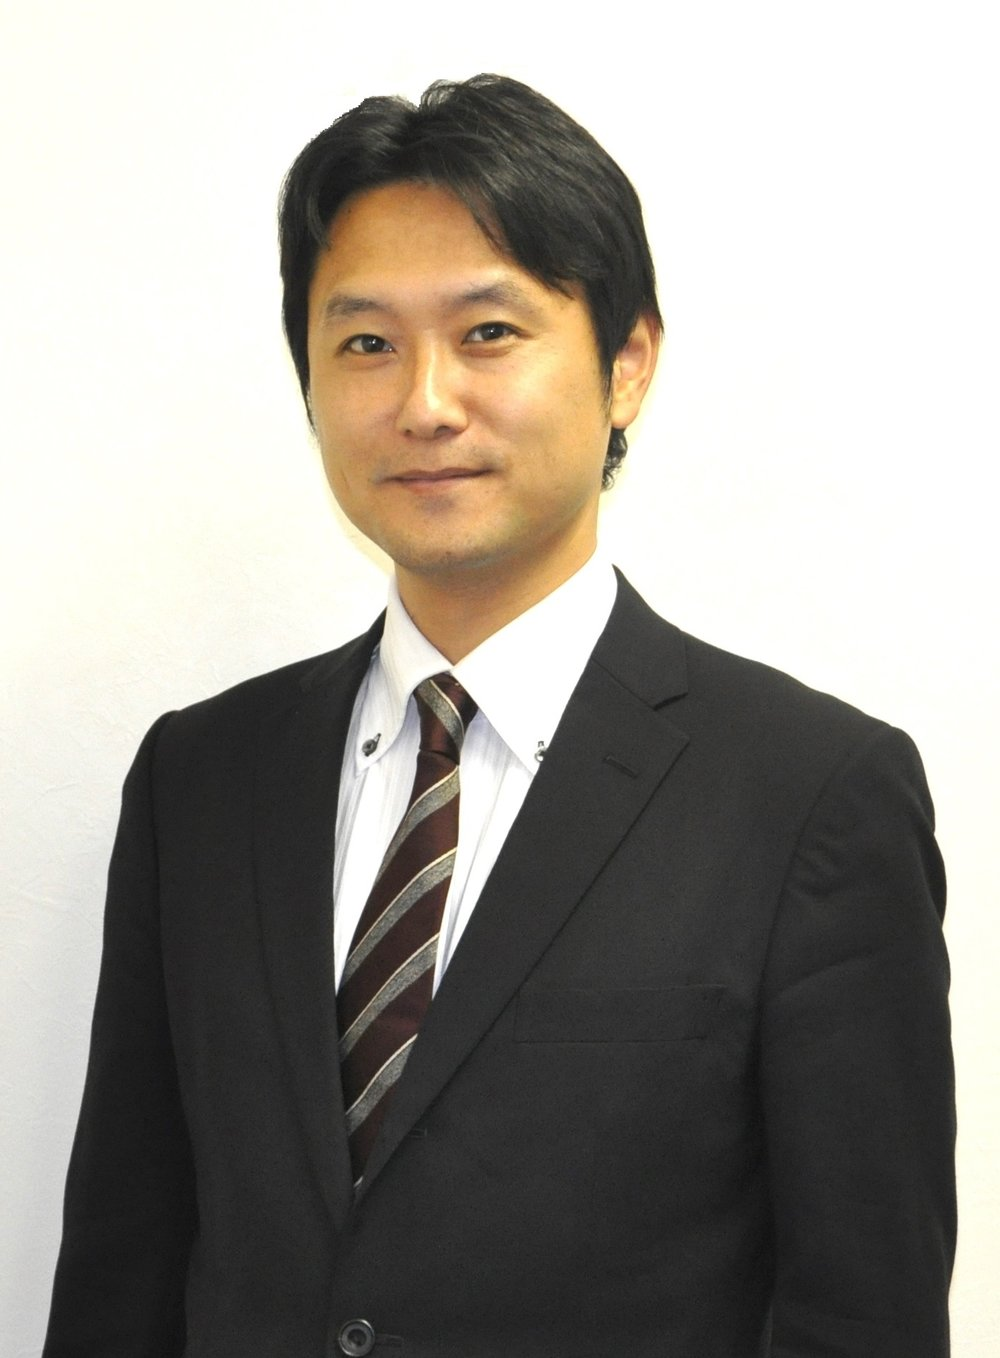 藤田 耕司 / Koji FUJITA  公認会計士・税理士、心理カウンセラー / Certified Public Accountant and tax accountant, Psychological Counselor